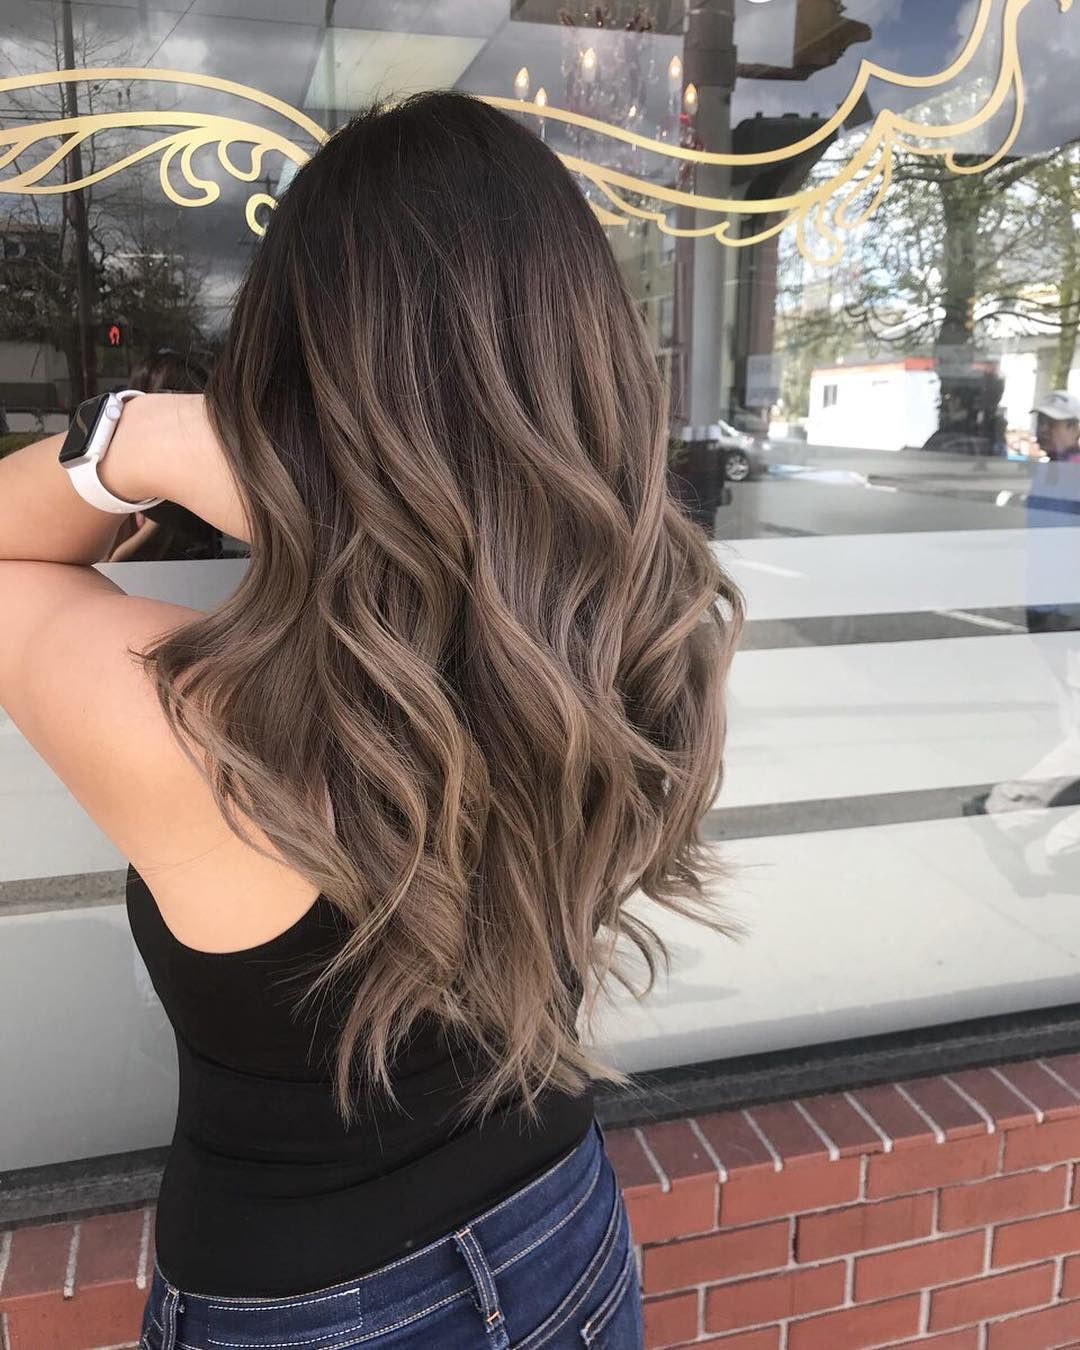 9 Trending Balayage Tones For All Hair Shades 9 Trending Balayage Tones for all Hair Shades Hair Color Ideas hair color ideas for black hair